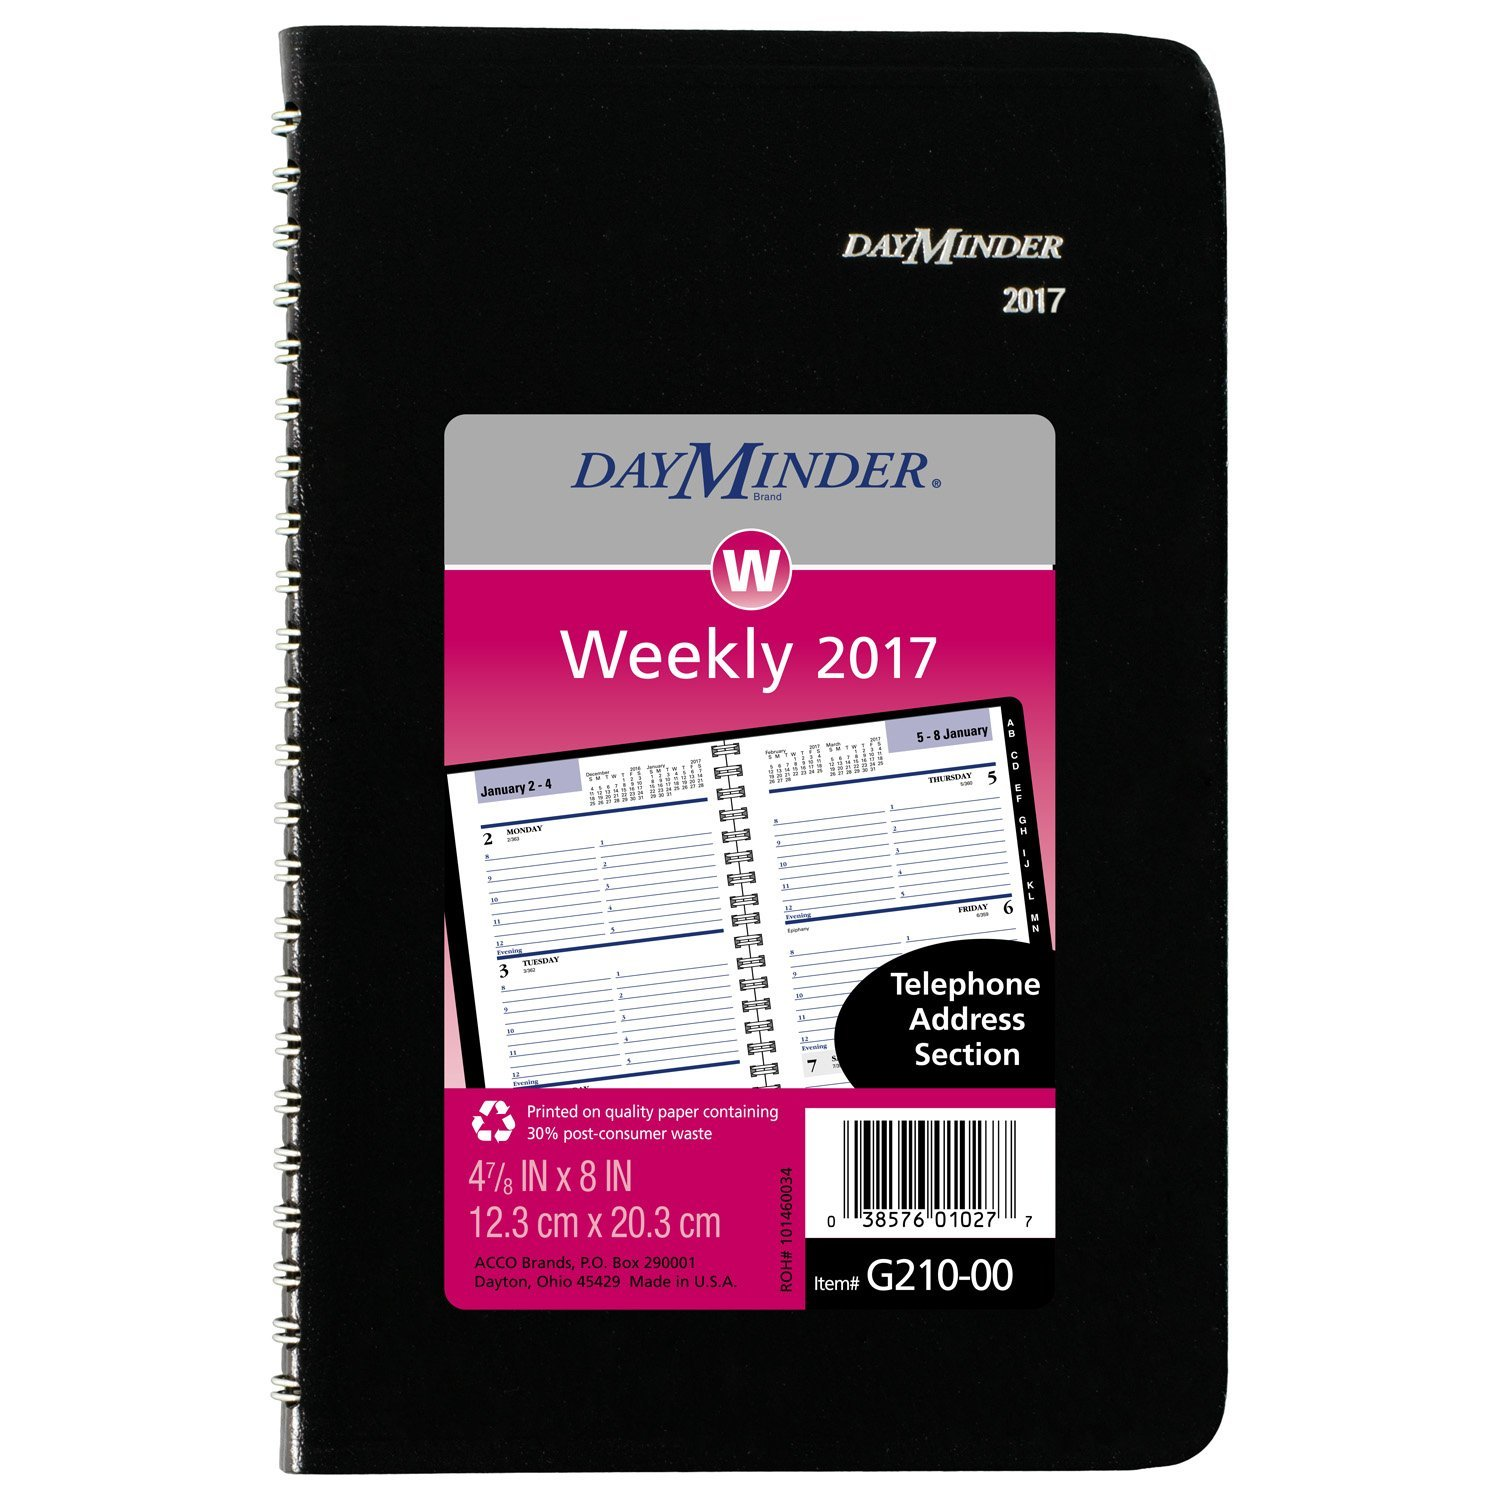 DayMinder Weekly Appointment Book / Planner 2017, 4-7/8 x 8'', Tabbed Telephone/Address, Black (G210-00)